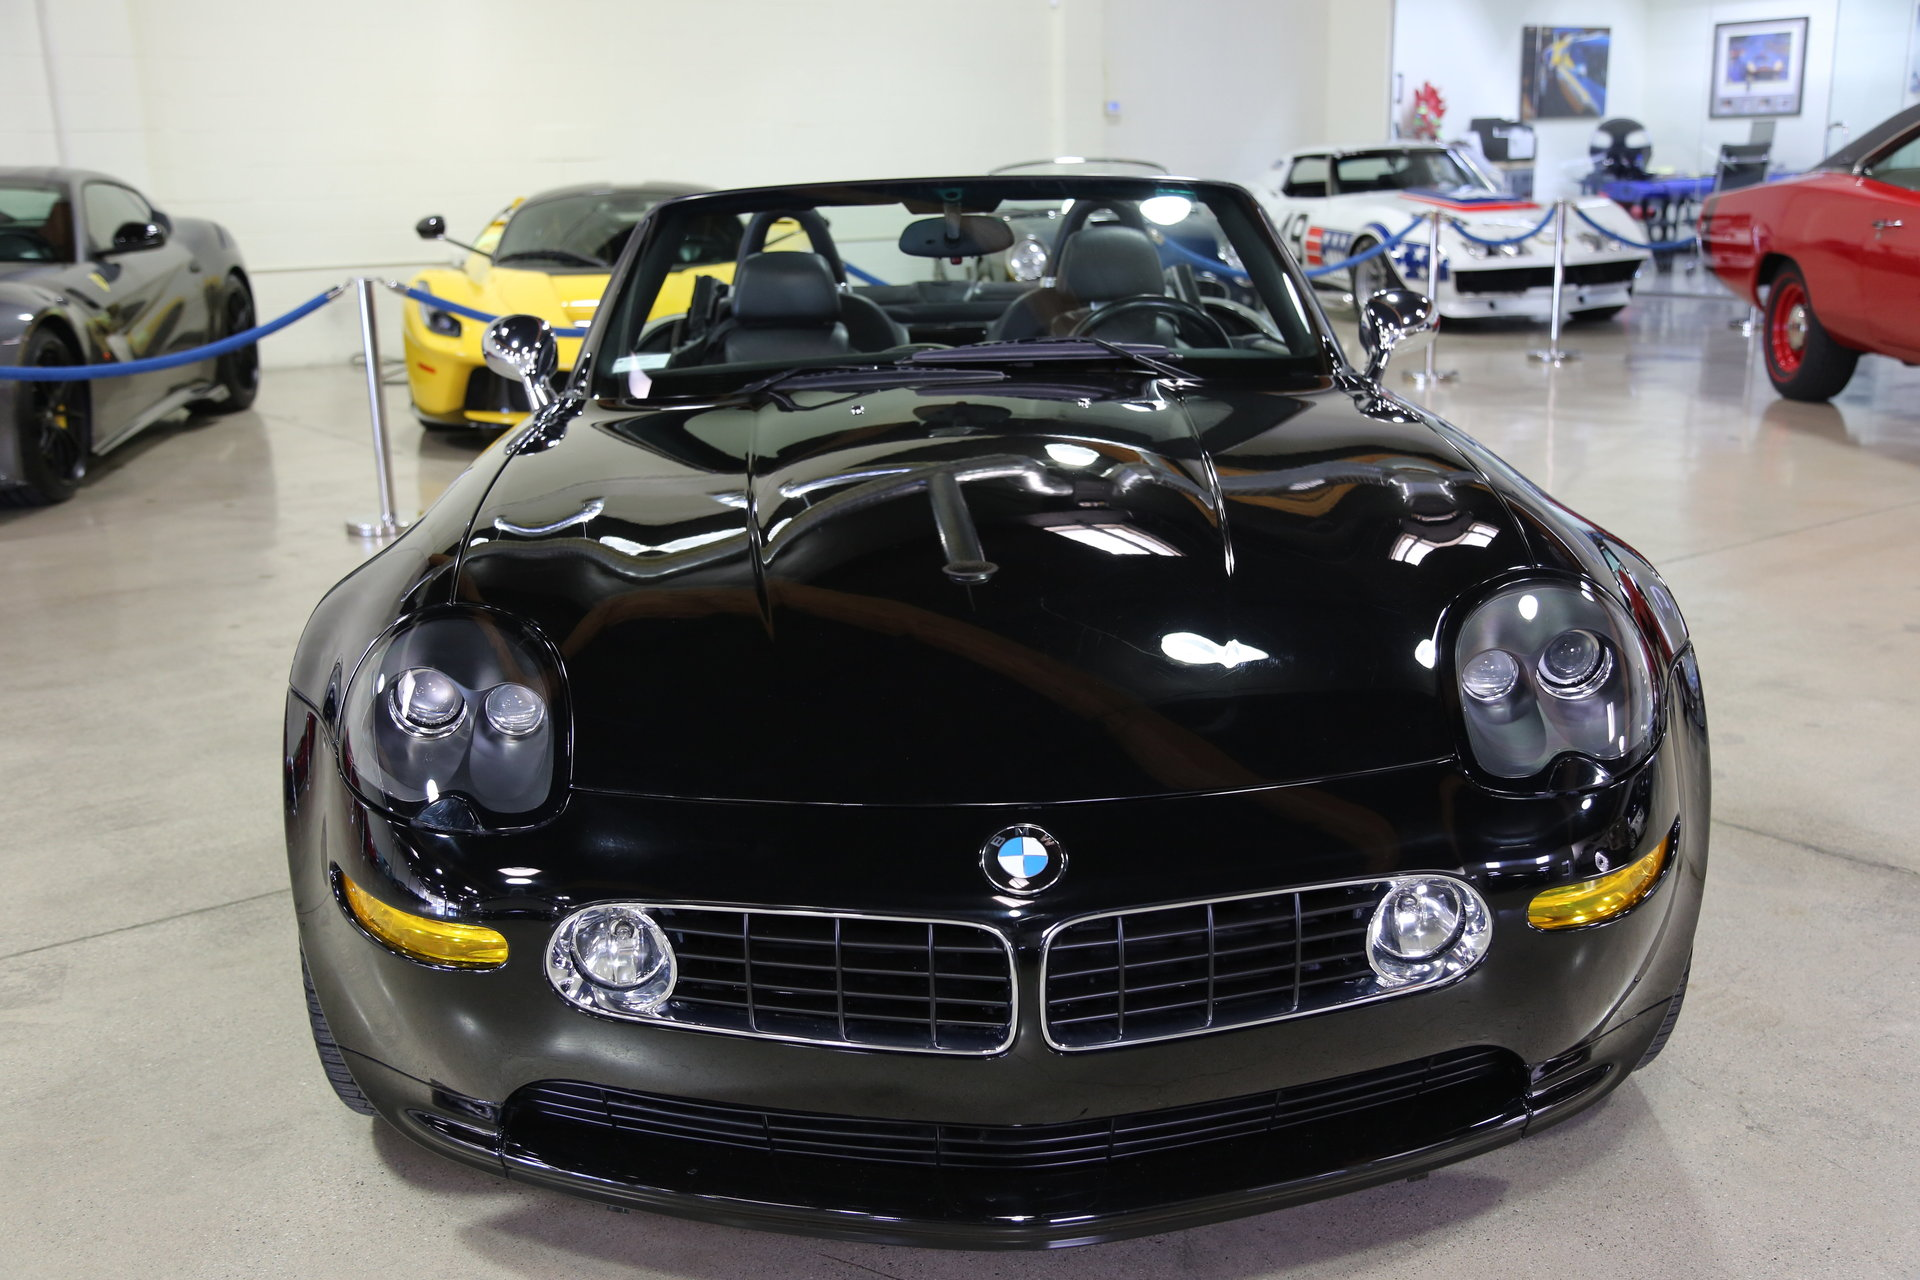 2002 Bmw Z8 2dr Roadster For Sale 80768 Mcg